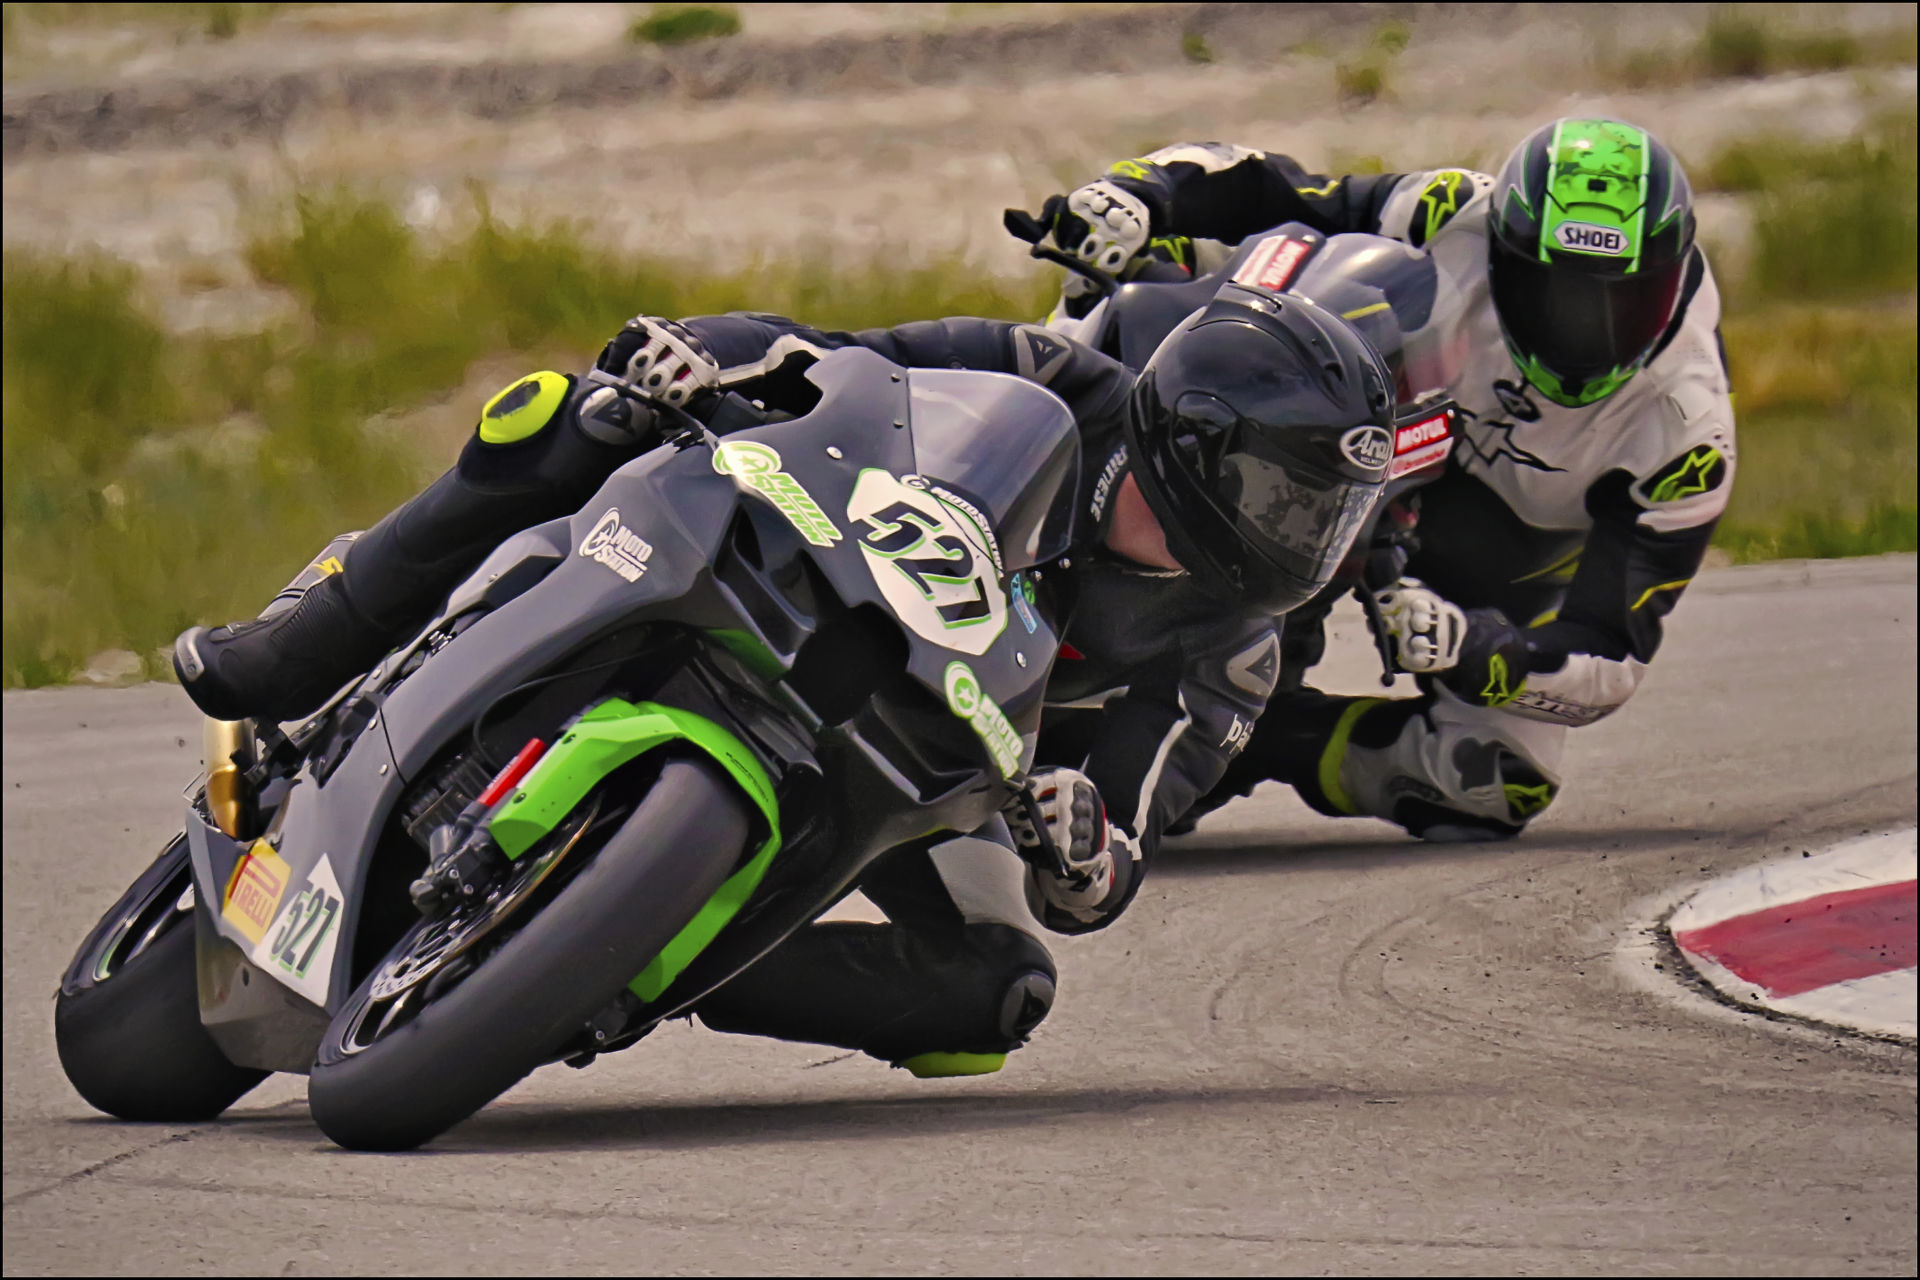 Jerry Hicks (527) holds off Michael Bradshaw in Round 2 of the UtahSBA King of the Mountain race at the Utah Motorsports Campus' West Track. Photo by Steve Midgley, Courtesy UtahSBA.